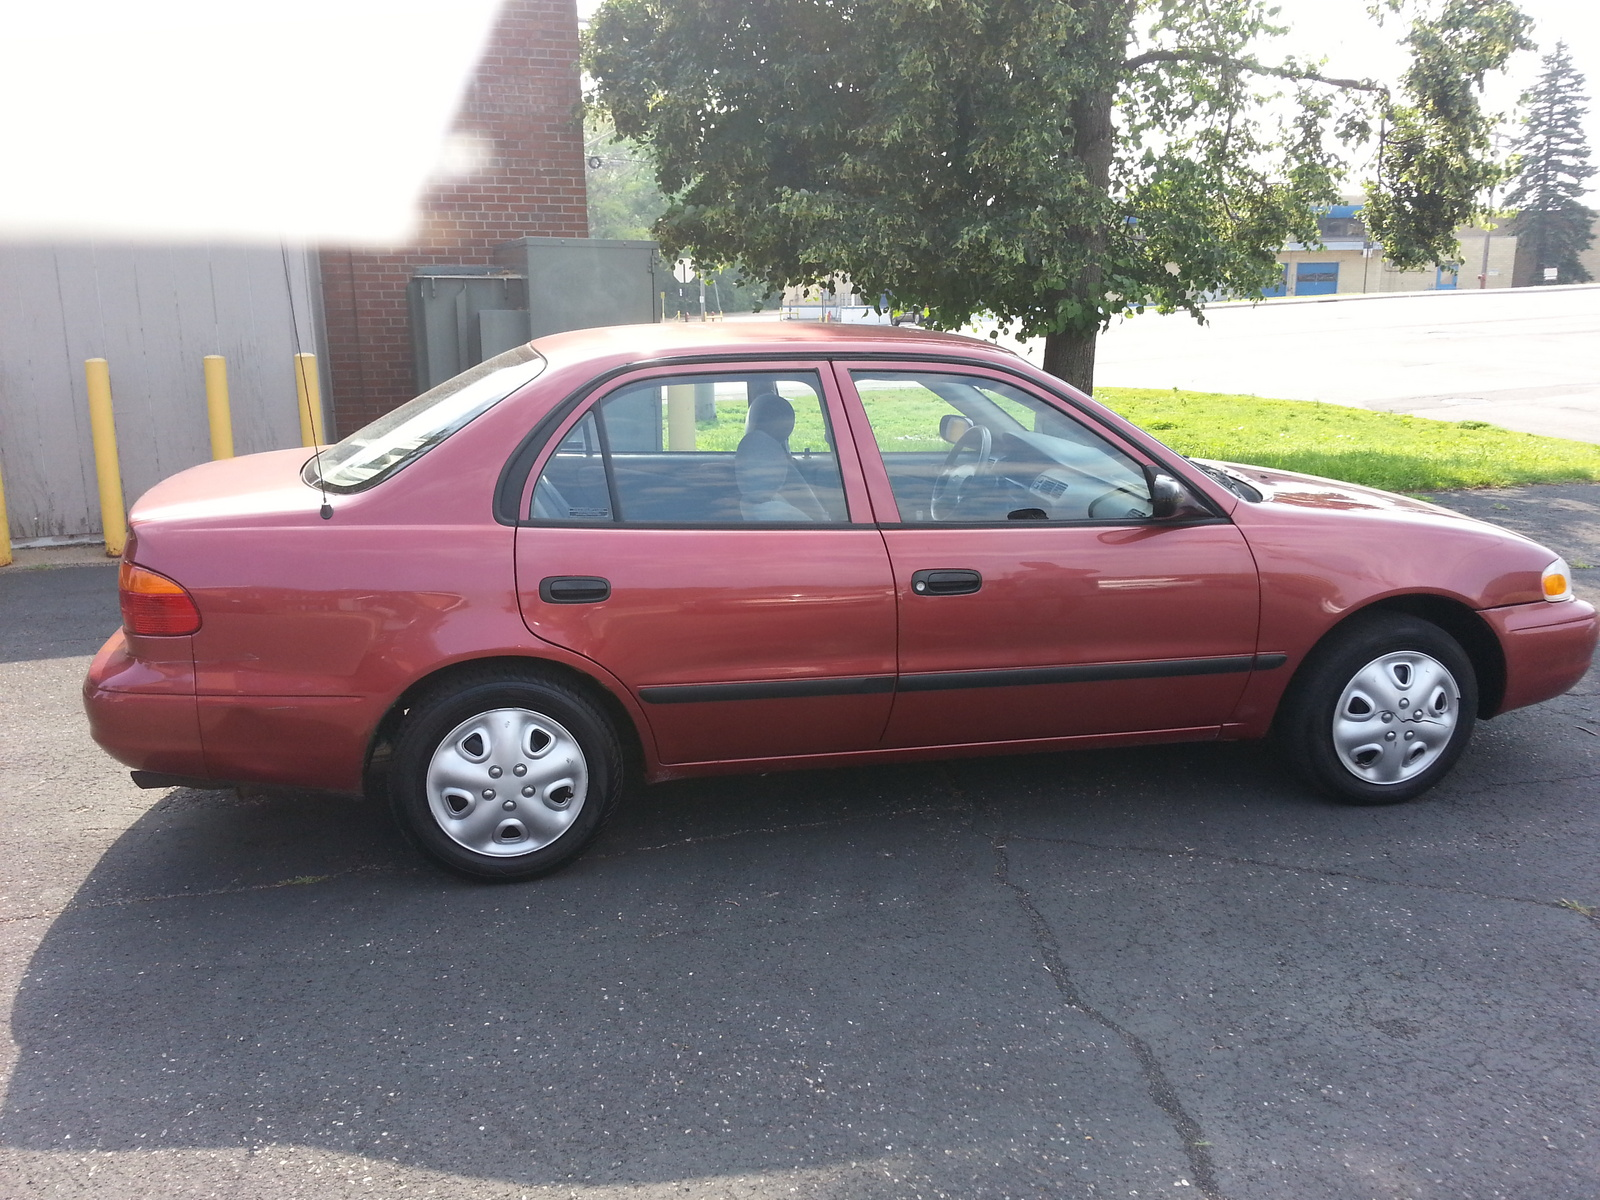 Picture of 1999 Chevrolet Prizm 4 Dr LSi Sedan